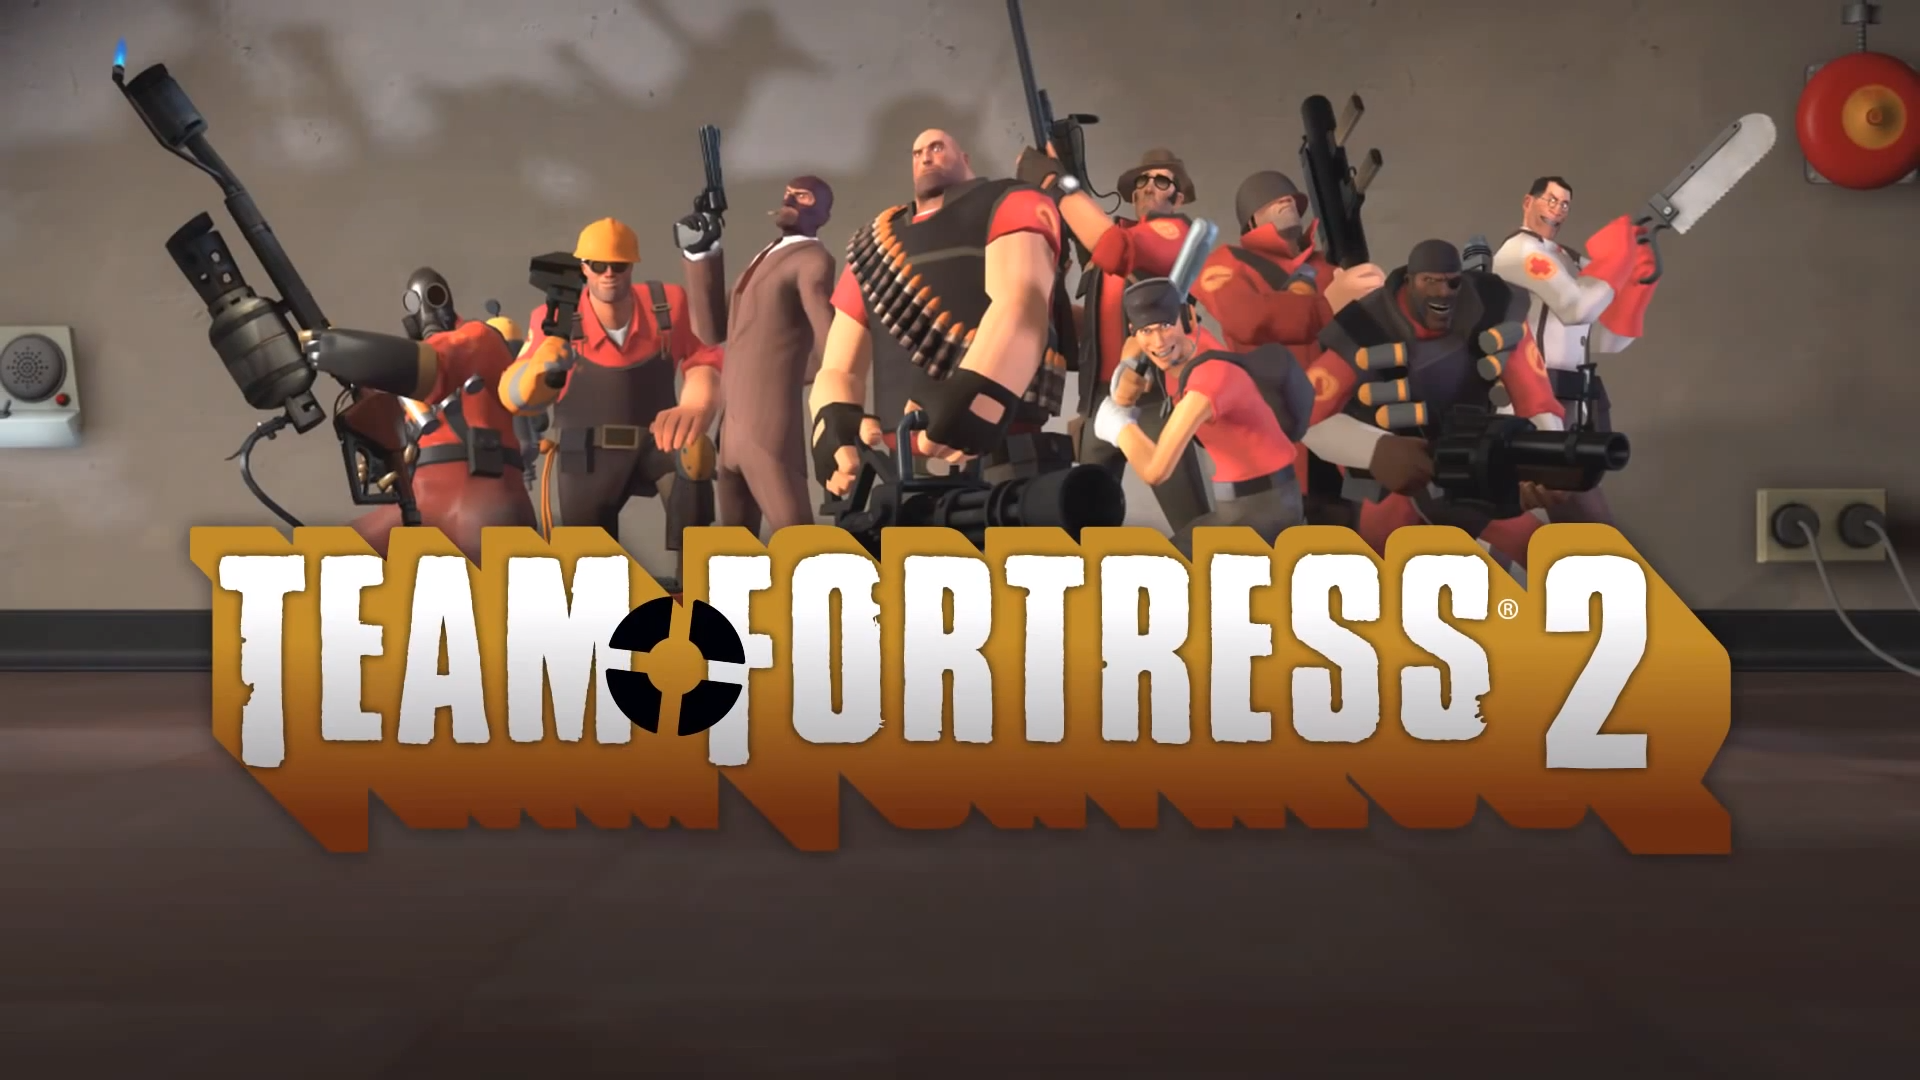 meet the tf2 characters pics